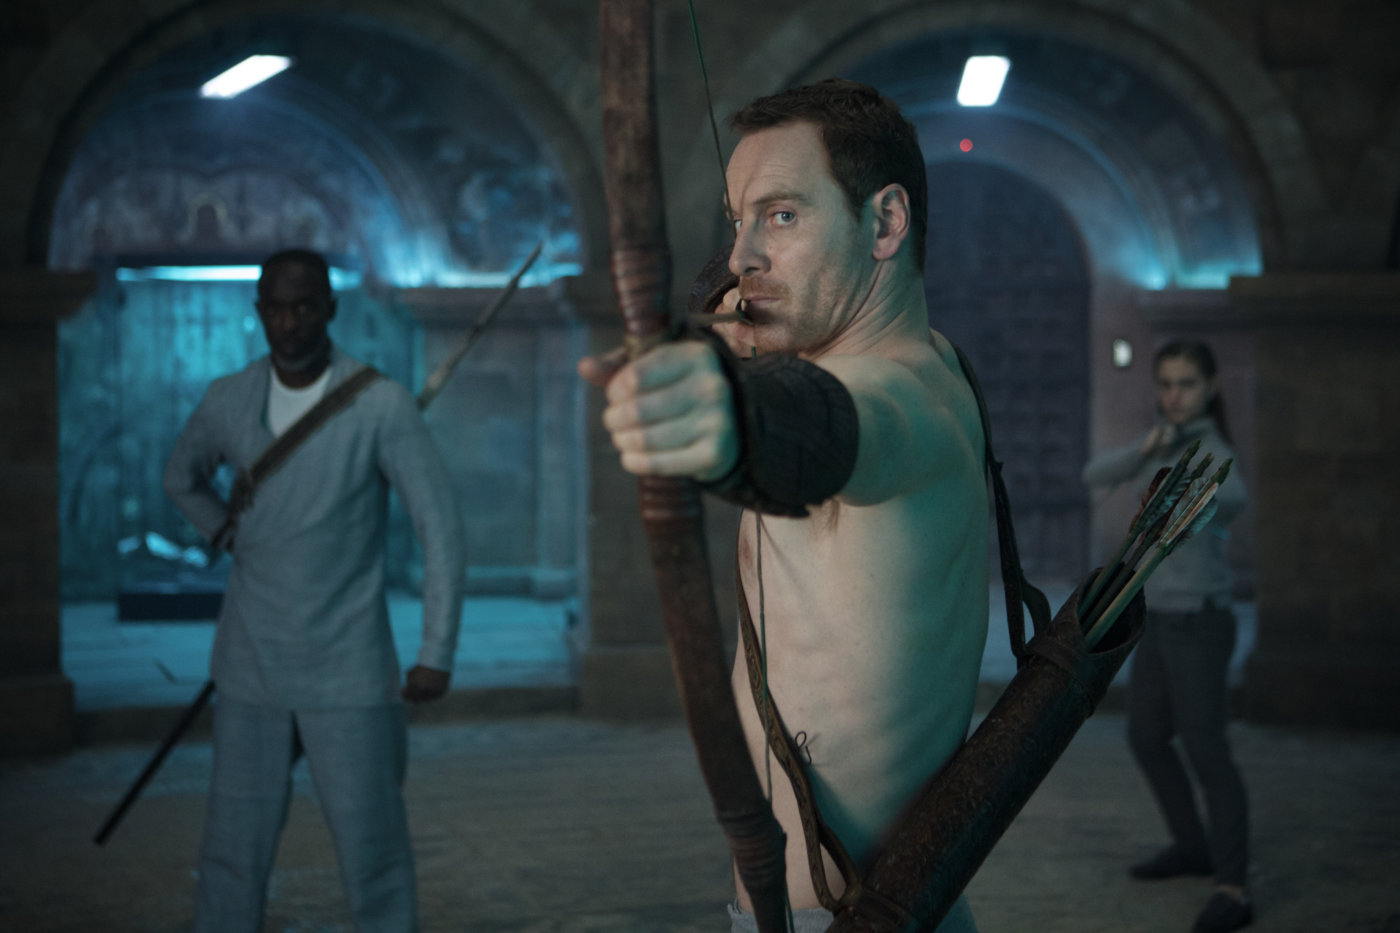 So Mr. Fassbender, we're going to need you to learn to shoot a bow & arrow shirtless because reasons...